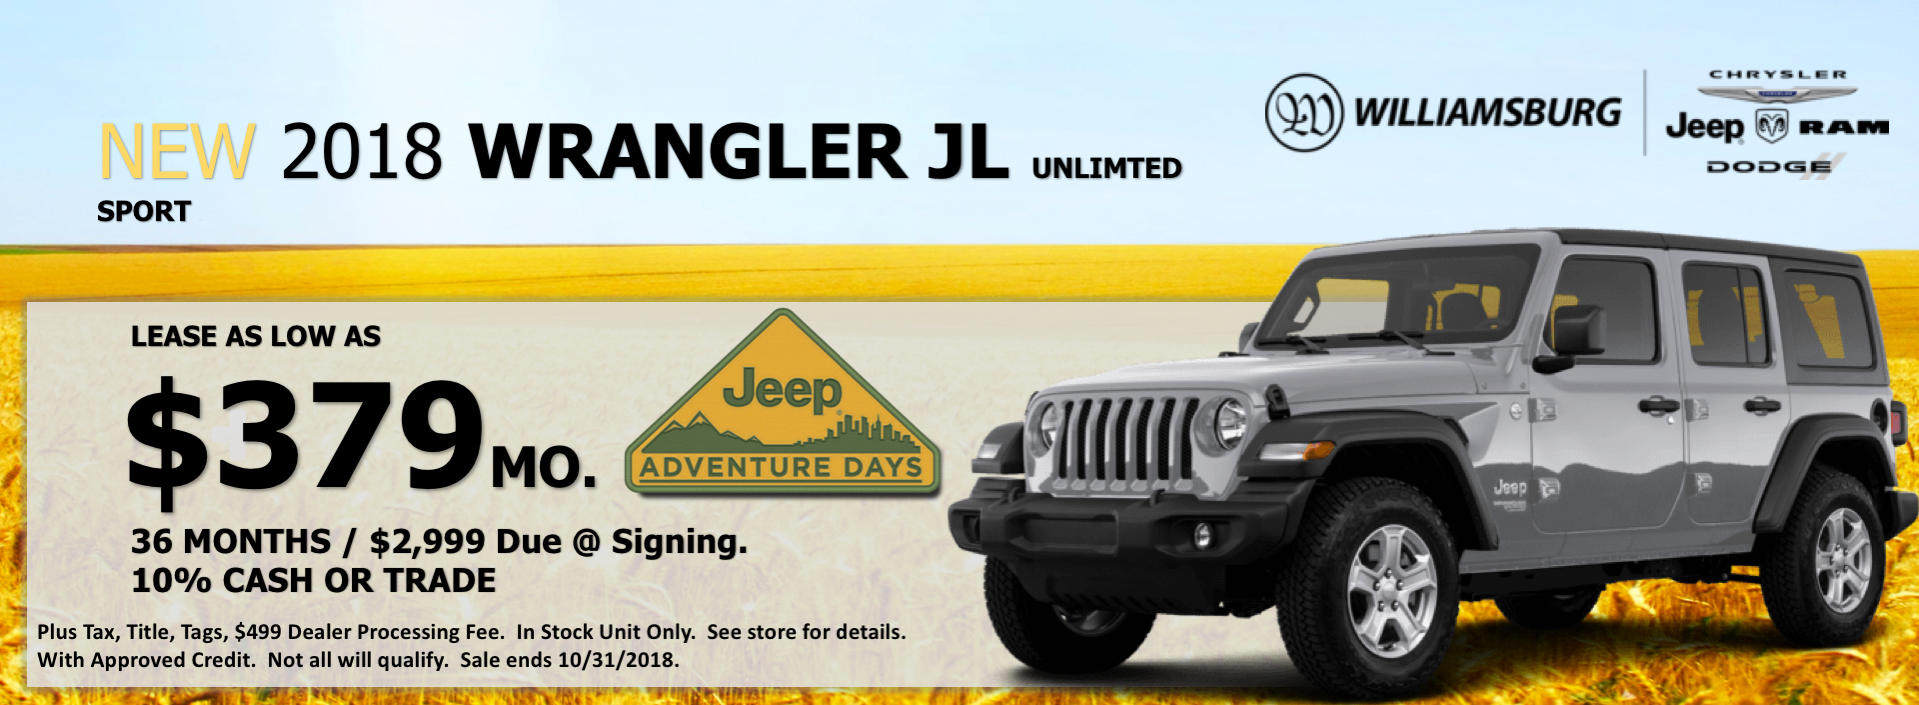 Williamsburg CDJR | Chrysler, Dodge, Jeep, Ram Dealer In Williamsburg, VA